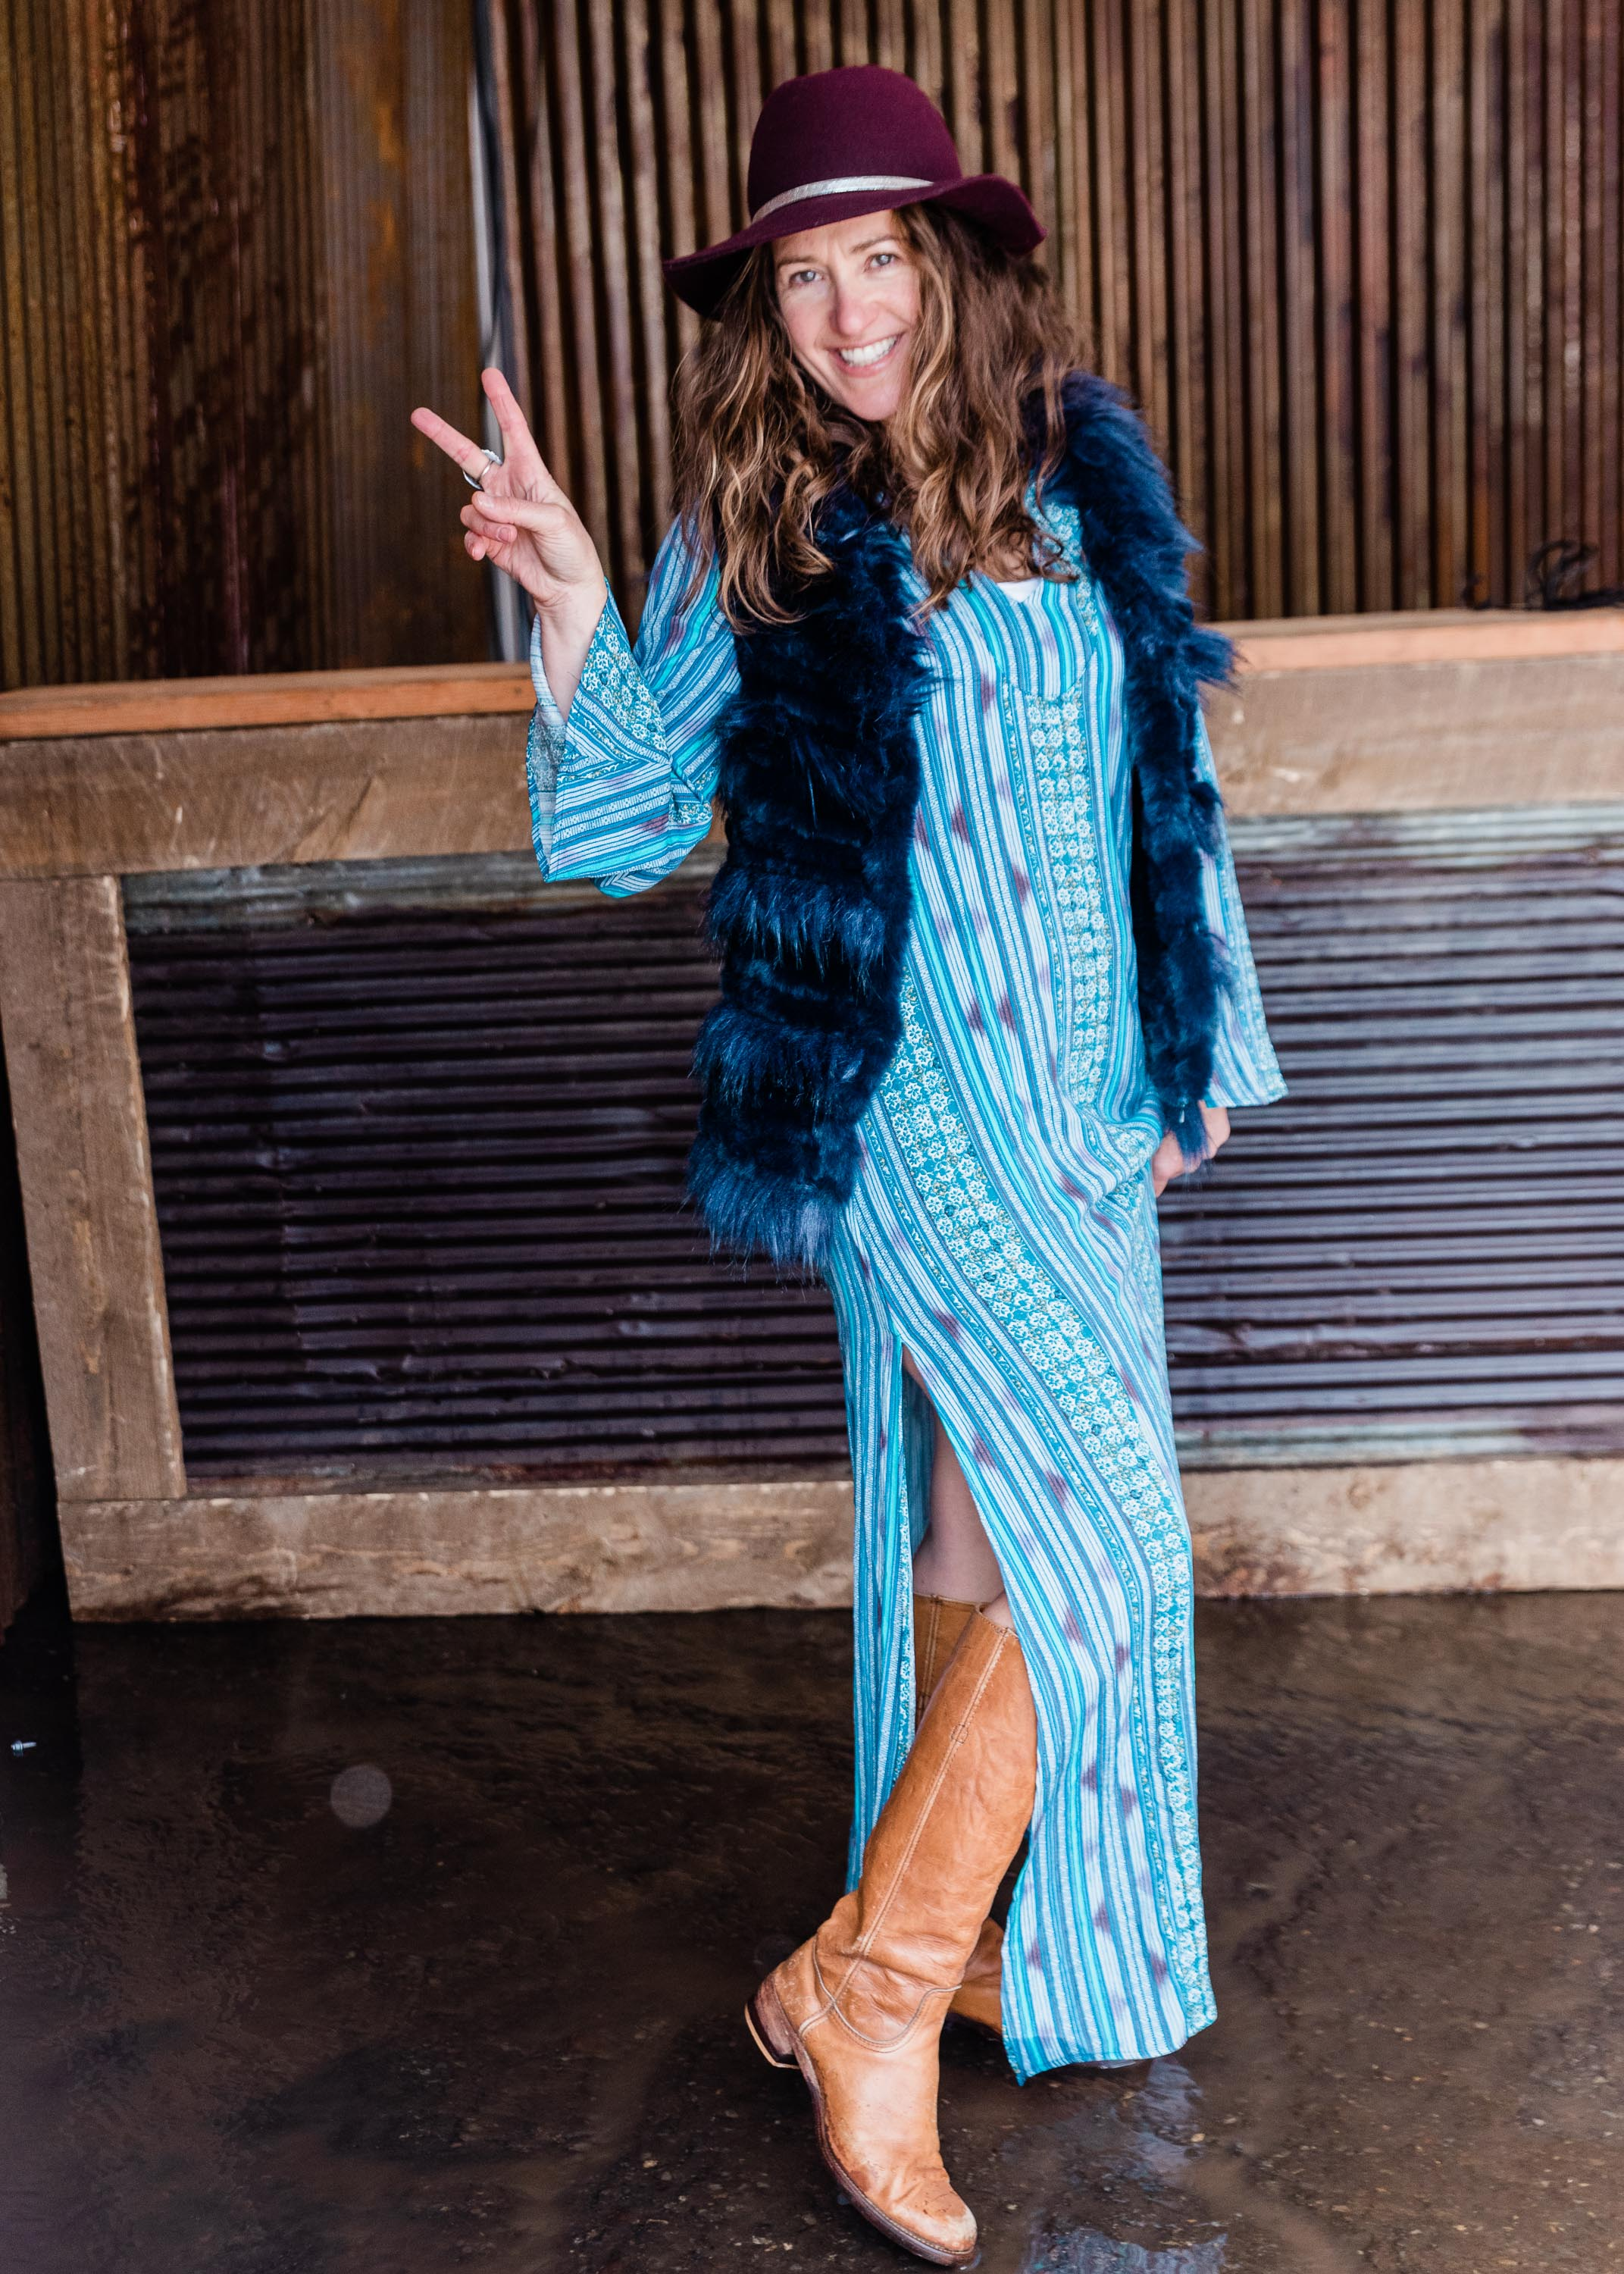 Bohemian Chic  Tysa's Seaside Kaftan dress paired with Frye Boots and Love Token's furry faux fur vest topped with a felt festival hat from Hat Attack will have people envious of your outfit while you are jamming in the front row.